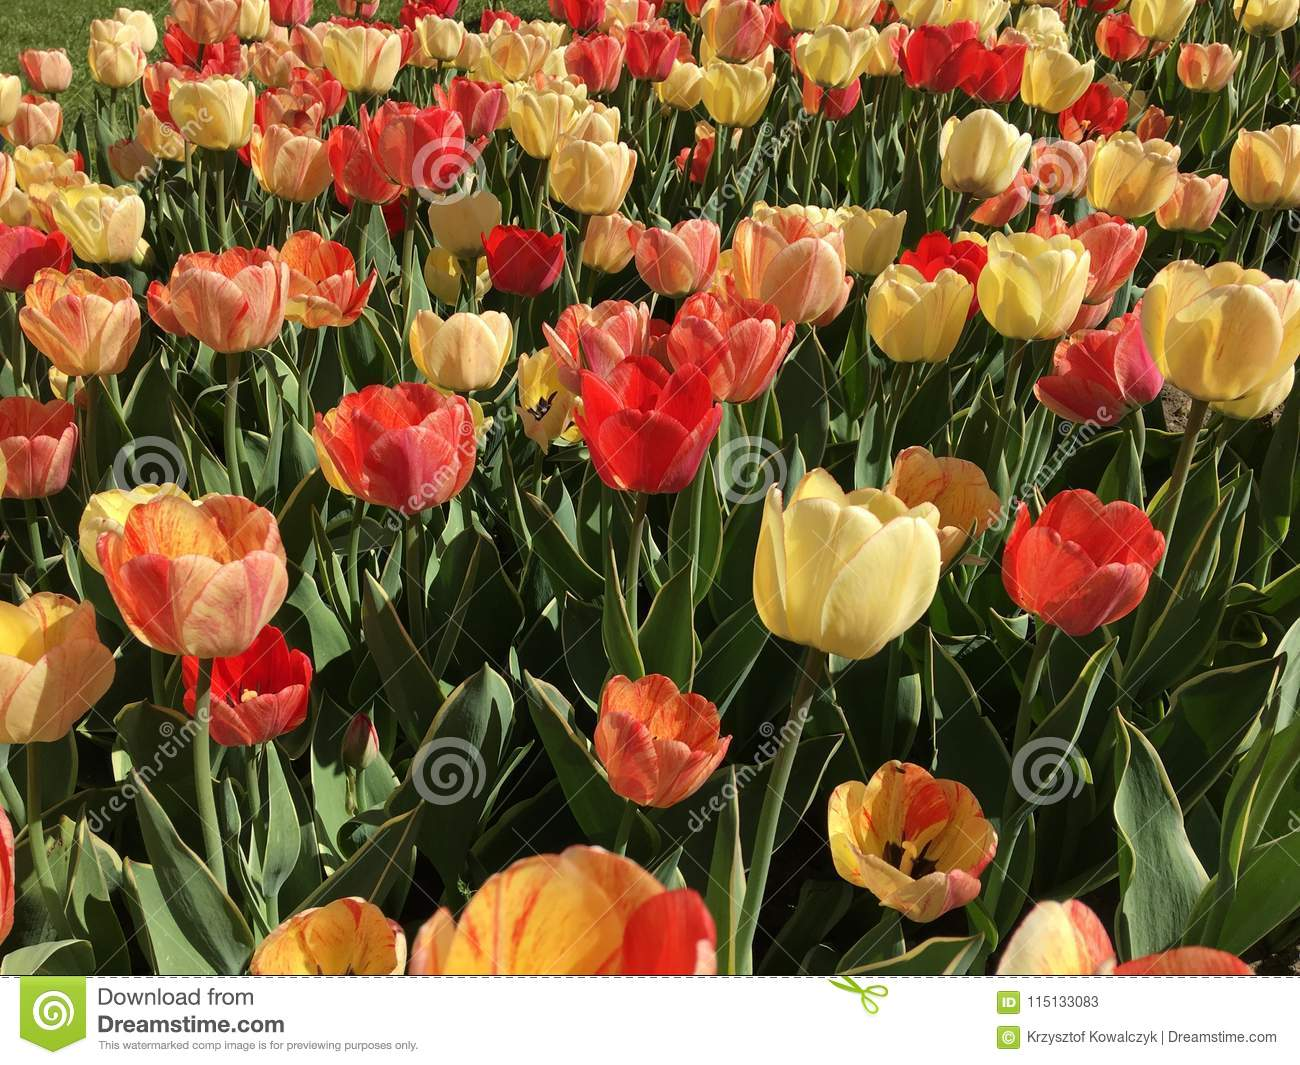 Lots of red and yellow tulip flowers name silverstream stock image tulip flowers garden in spring scientific name tulipa gesneriana gardening mightylinksfo